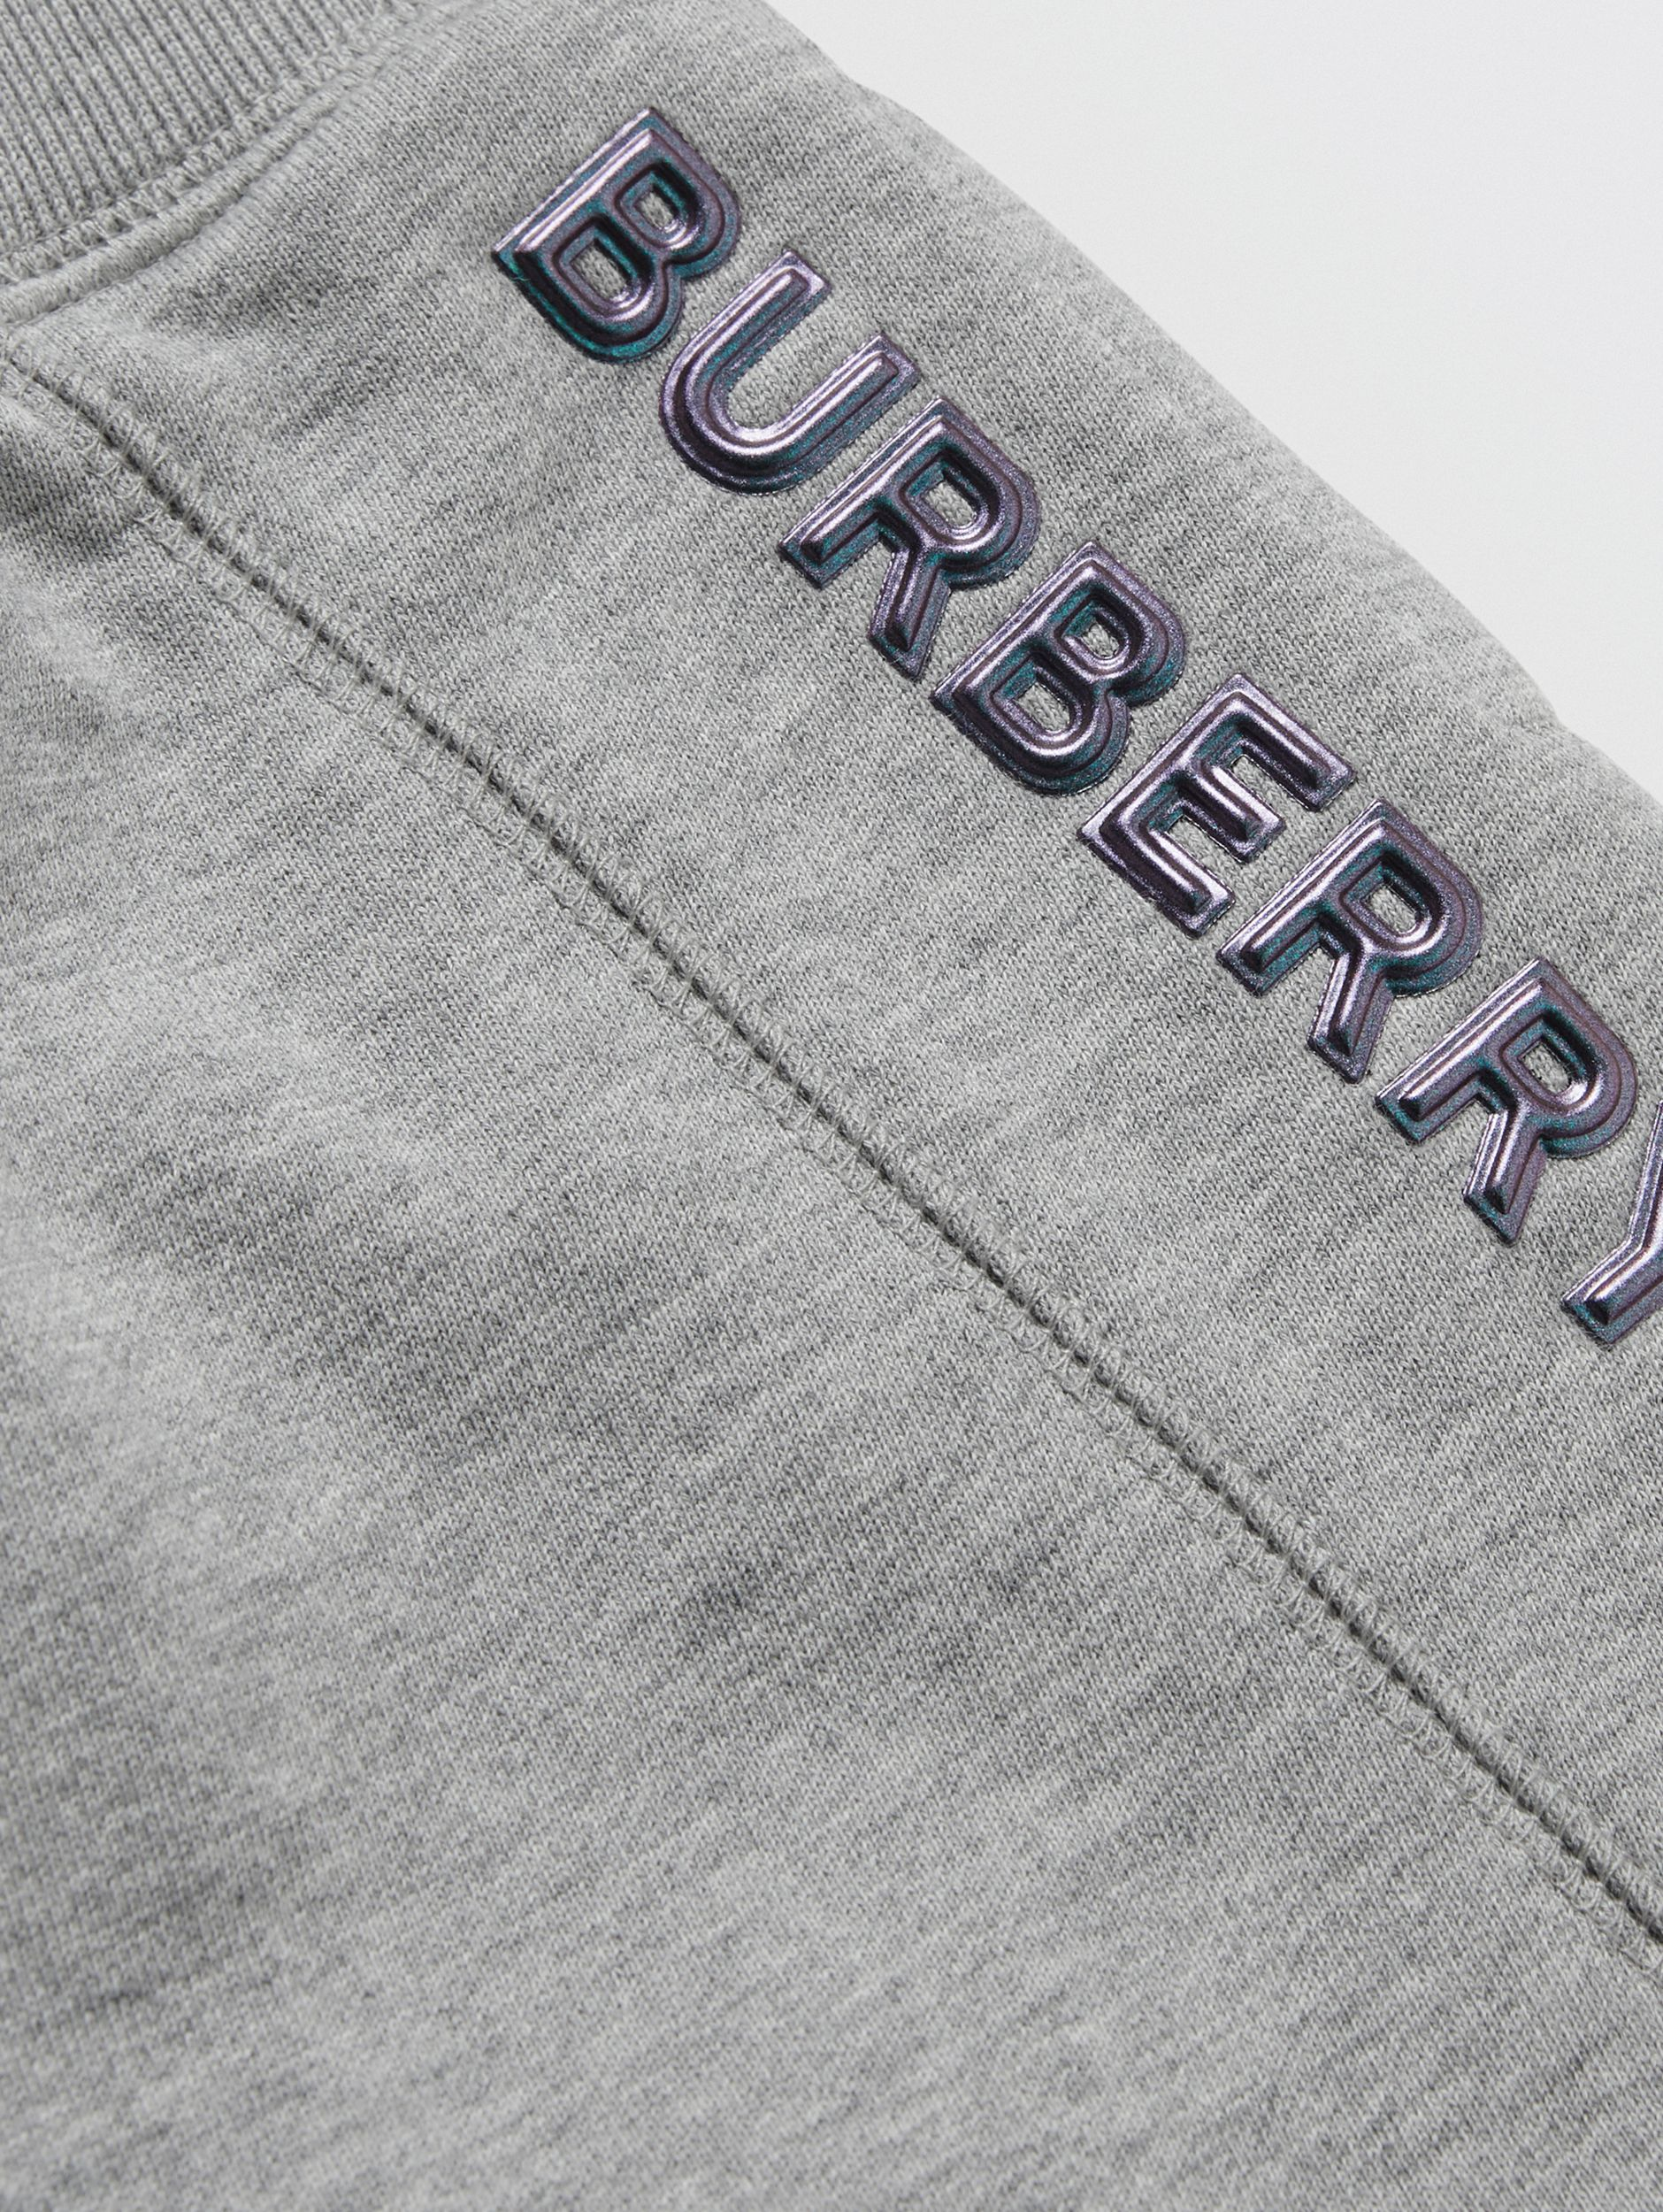 Logo Detail Cotton Drawcord Shorts in Grey Melange - Children | Burberry United States - 2